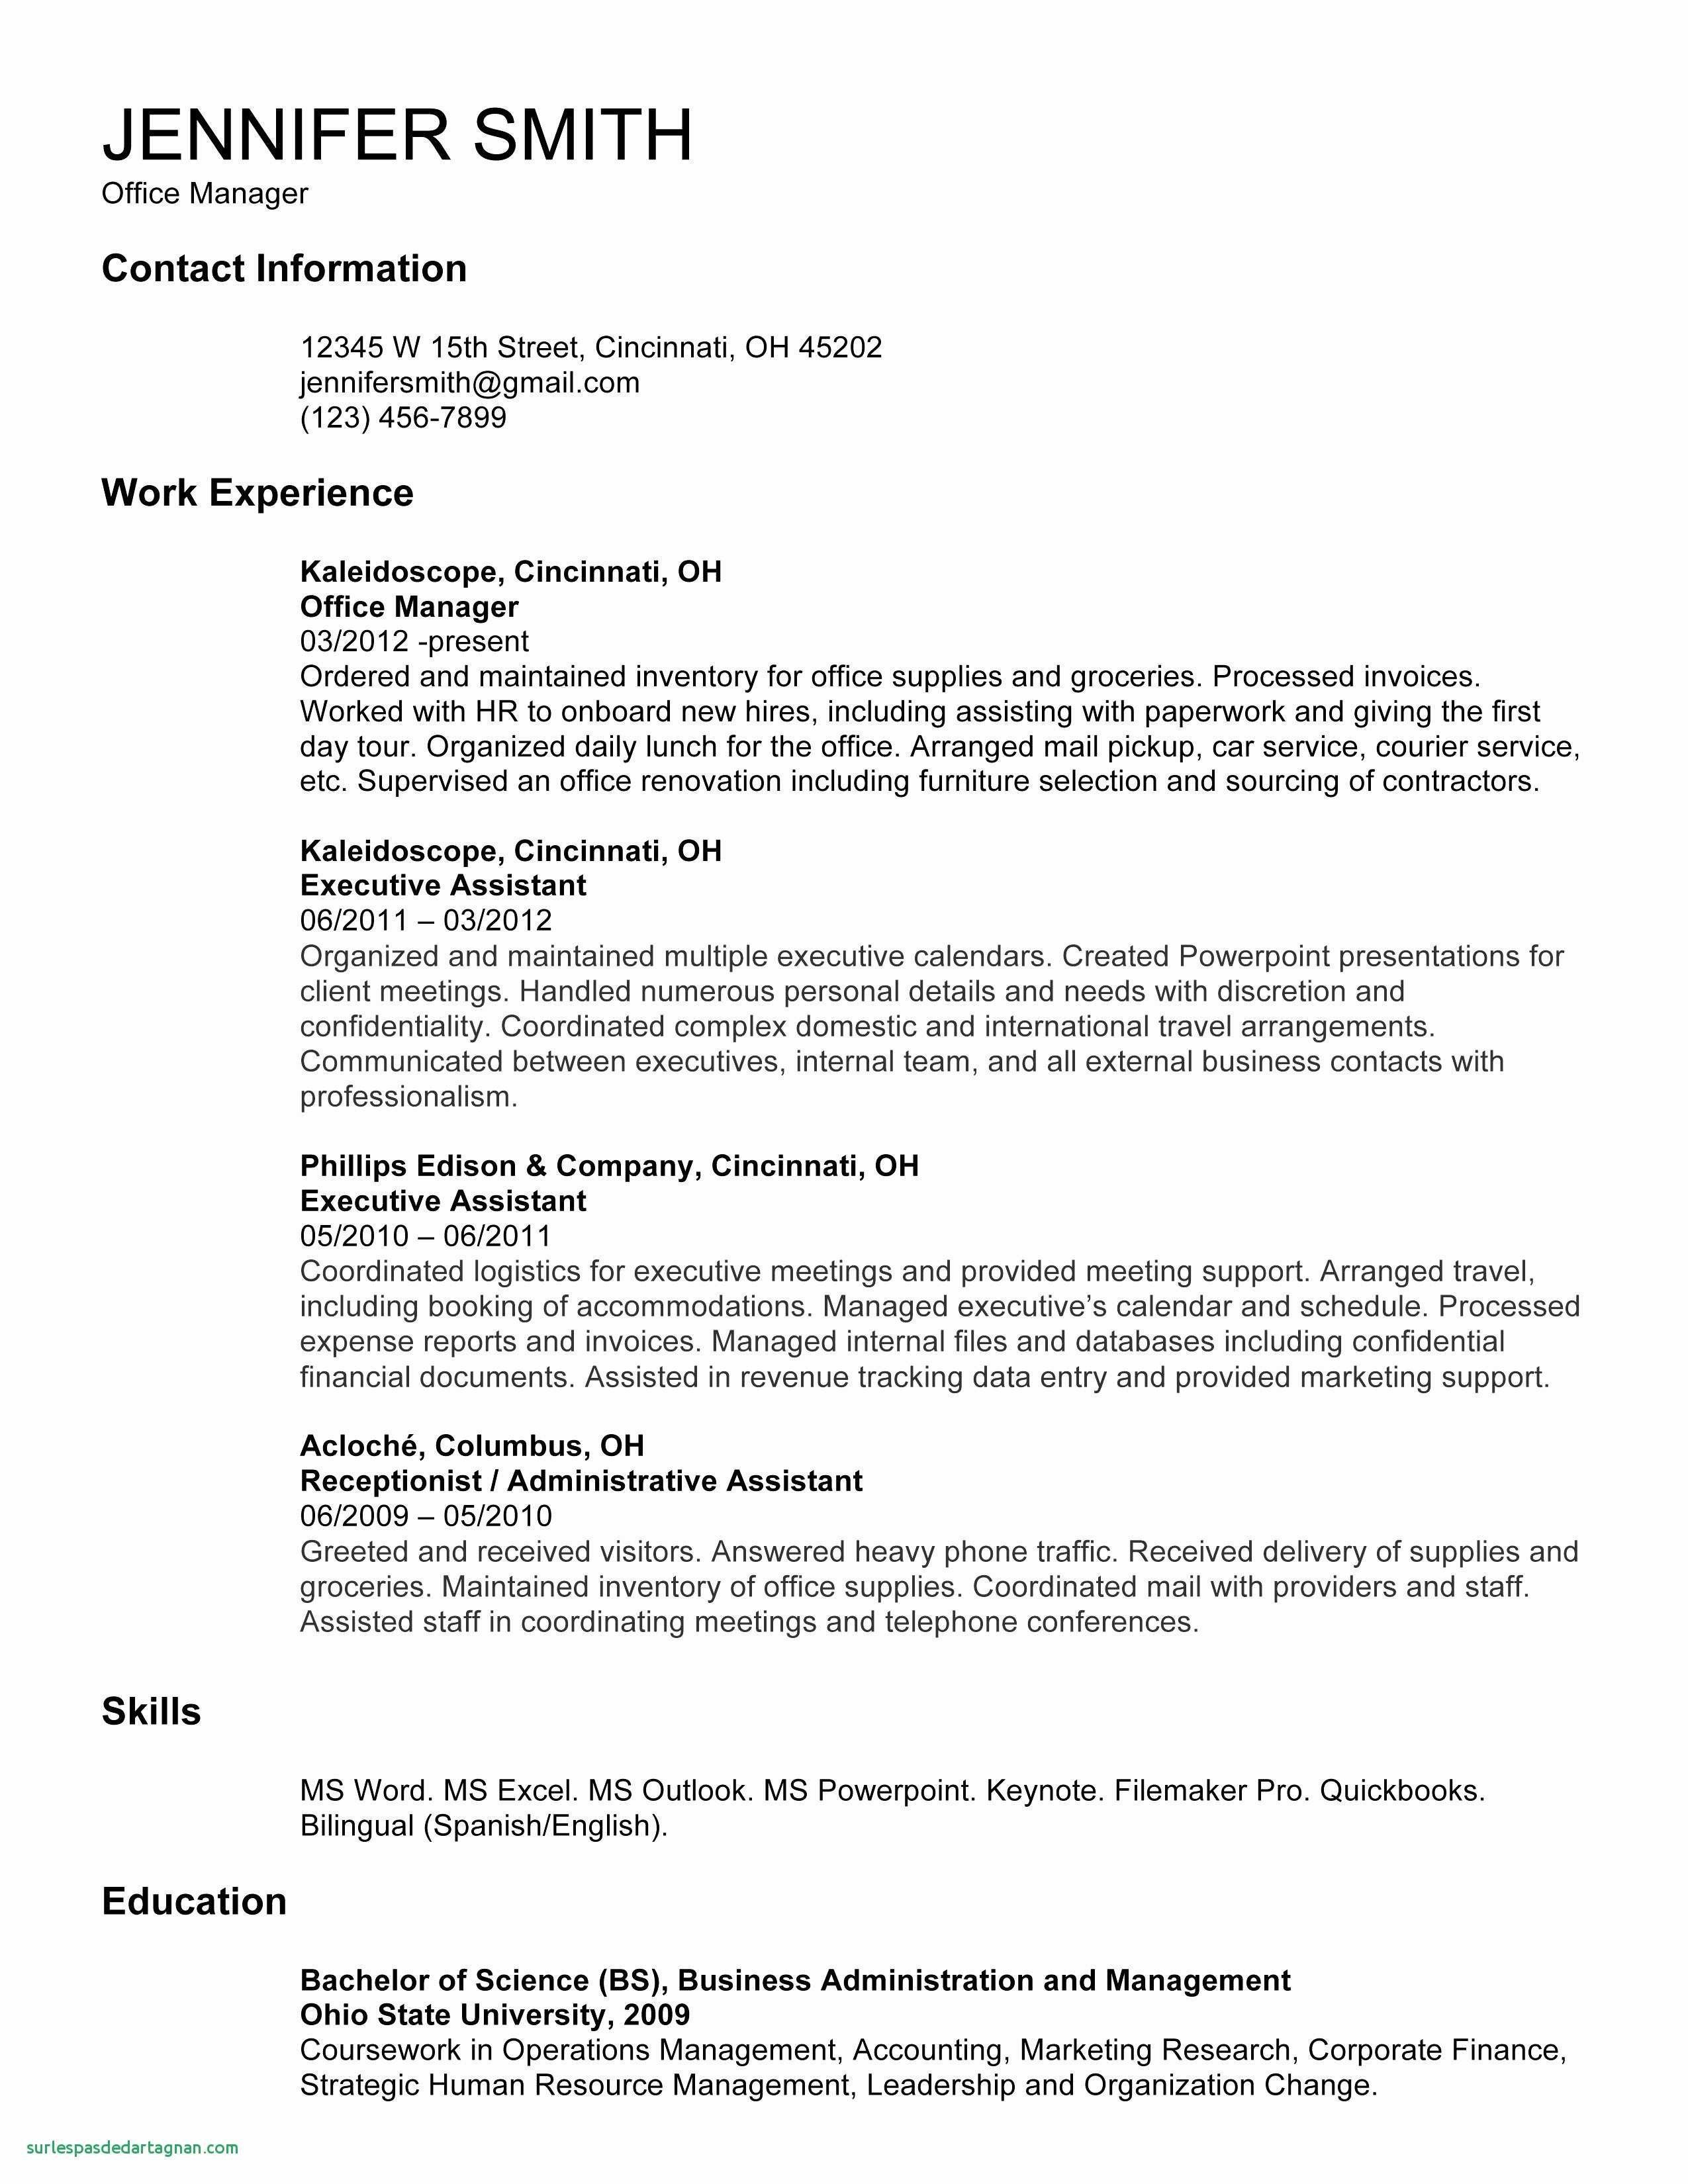 What Do I Need for A Resume - Resume Template Download Free Unique ¢Ë†Å¡ Resume Template Download